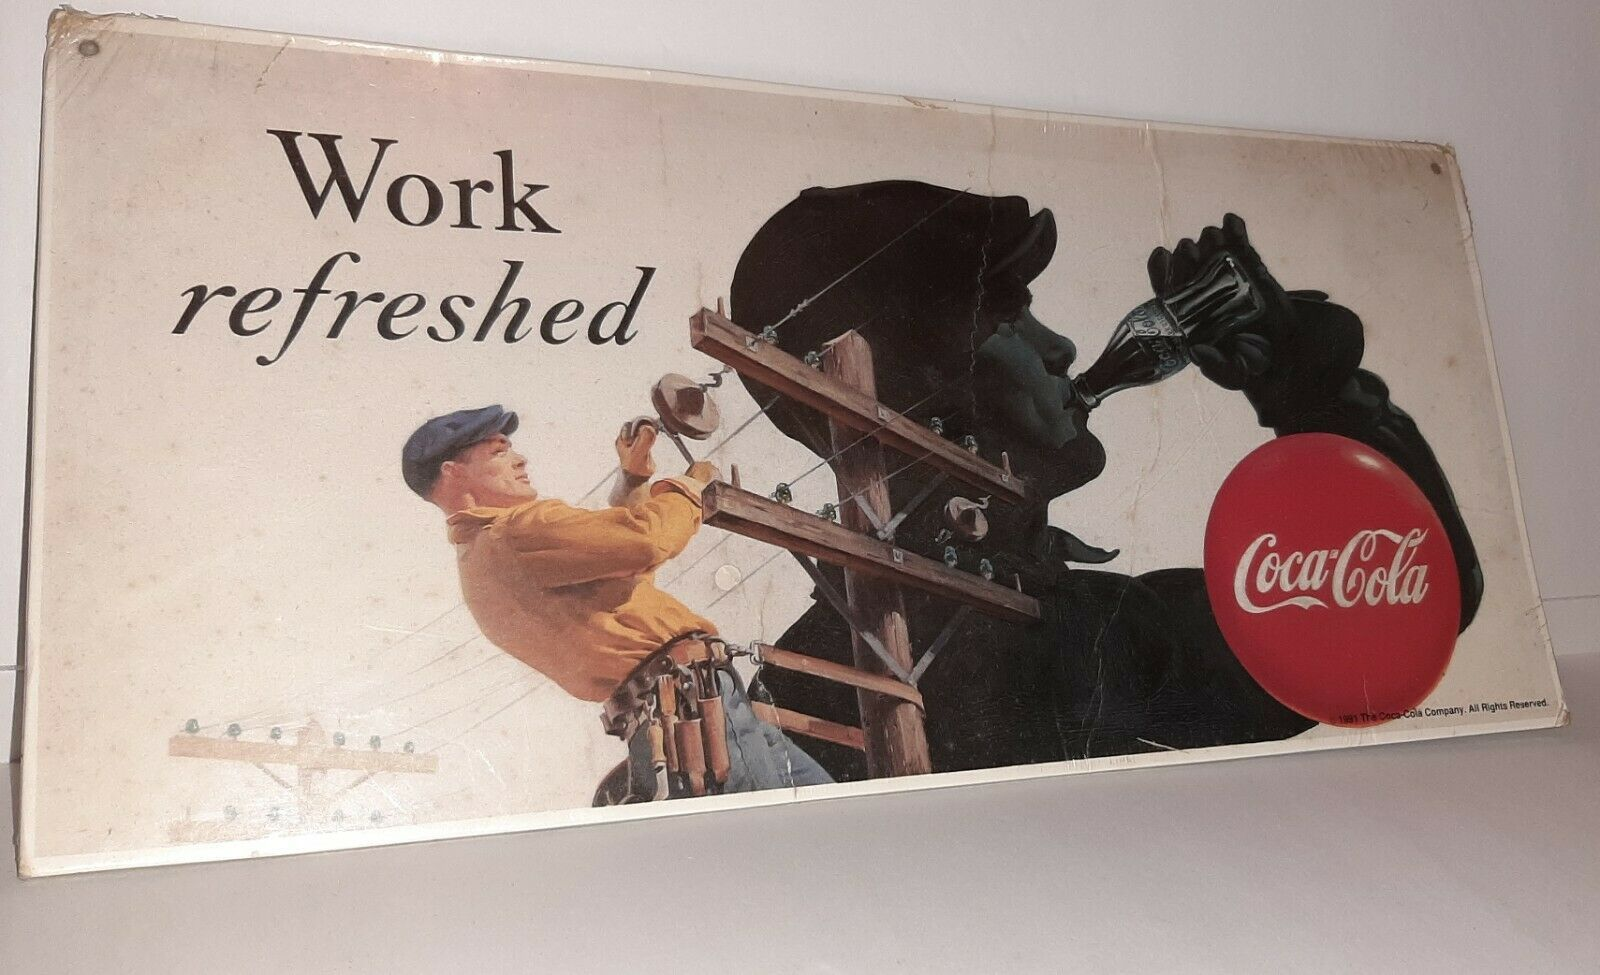 "Primary image for Coca Cola Billboard Mini Reproduction Sign 15x7""  Lineman Work Refreshed 1991"